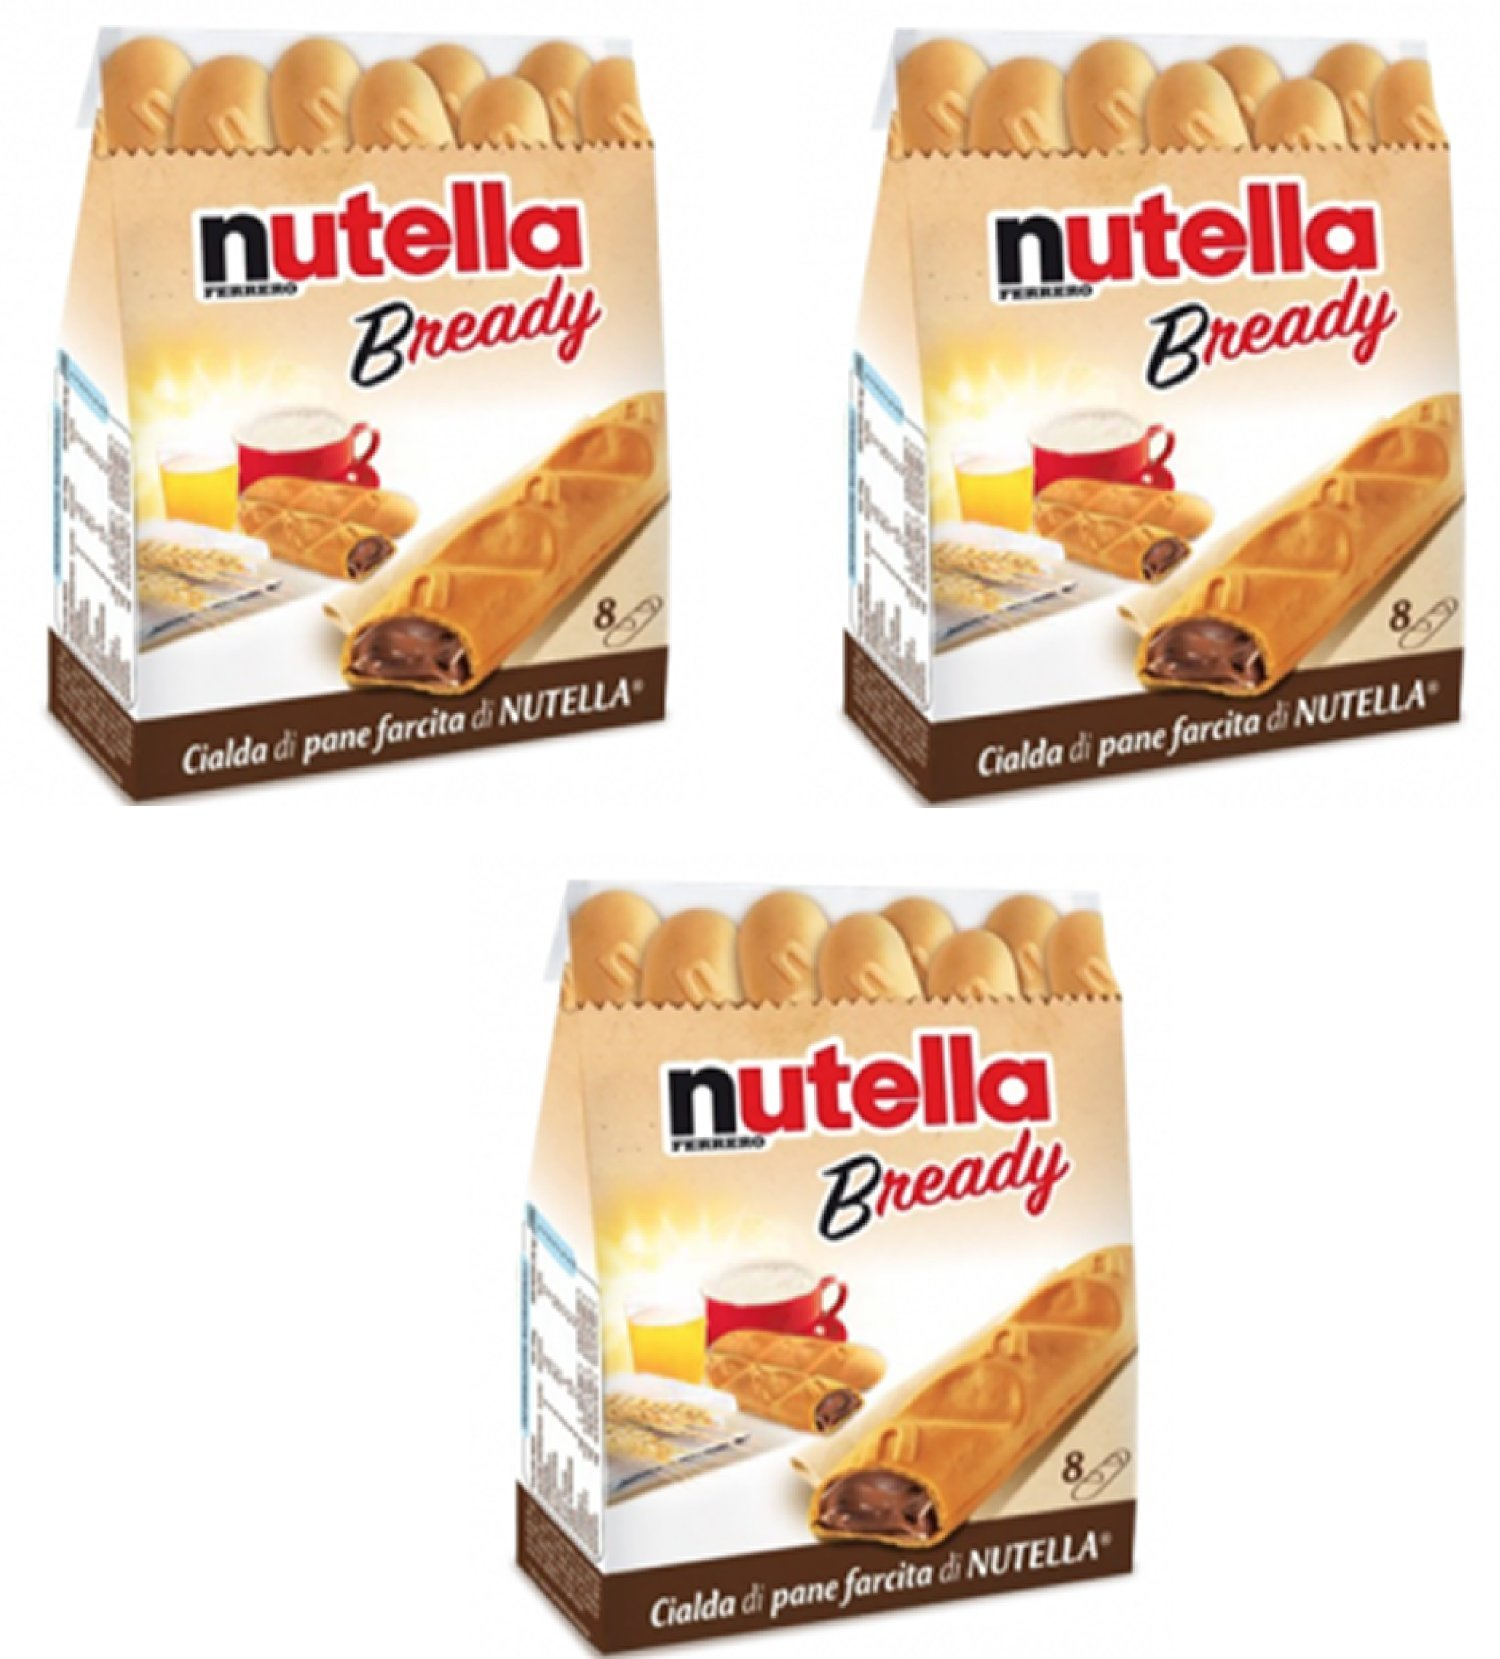 """Ferrero: """"Nutella B-ready """" a crisp wafer of bread in the form of mini - baguette stuffed with a creamy Nutella * 8 pieces * 5.39 oz (153g) * Pack of 3 [ Italian Import ]"""